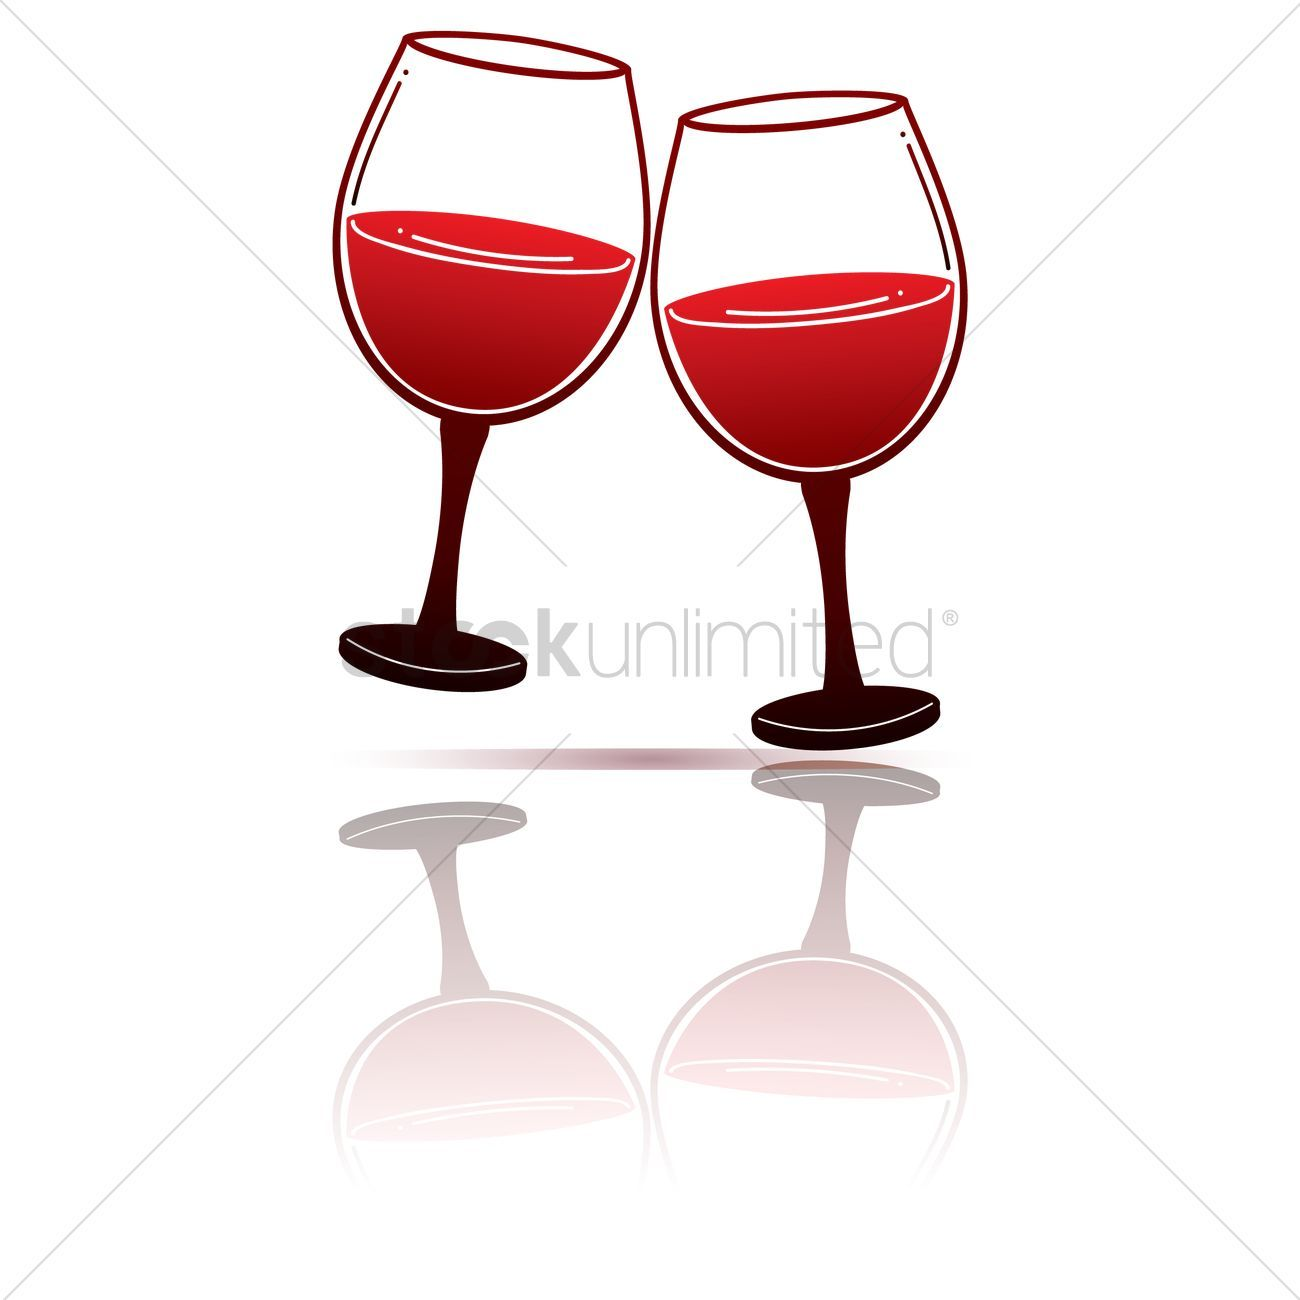 You Don T Have To Be A Designer To Get Awesome Visuals In 2020 Alcoholic Drinks Glassware Wine Glasses